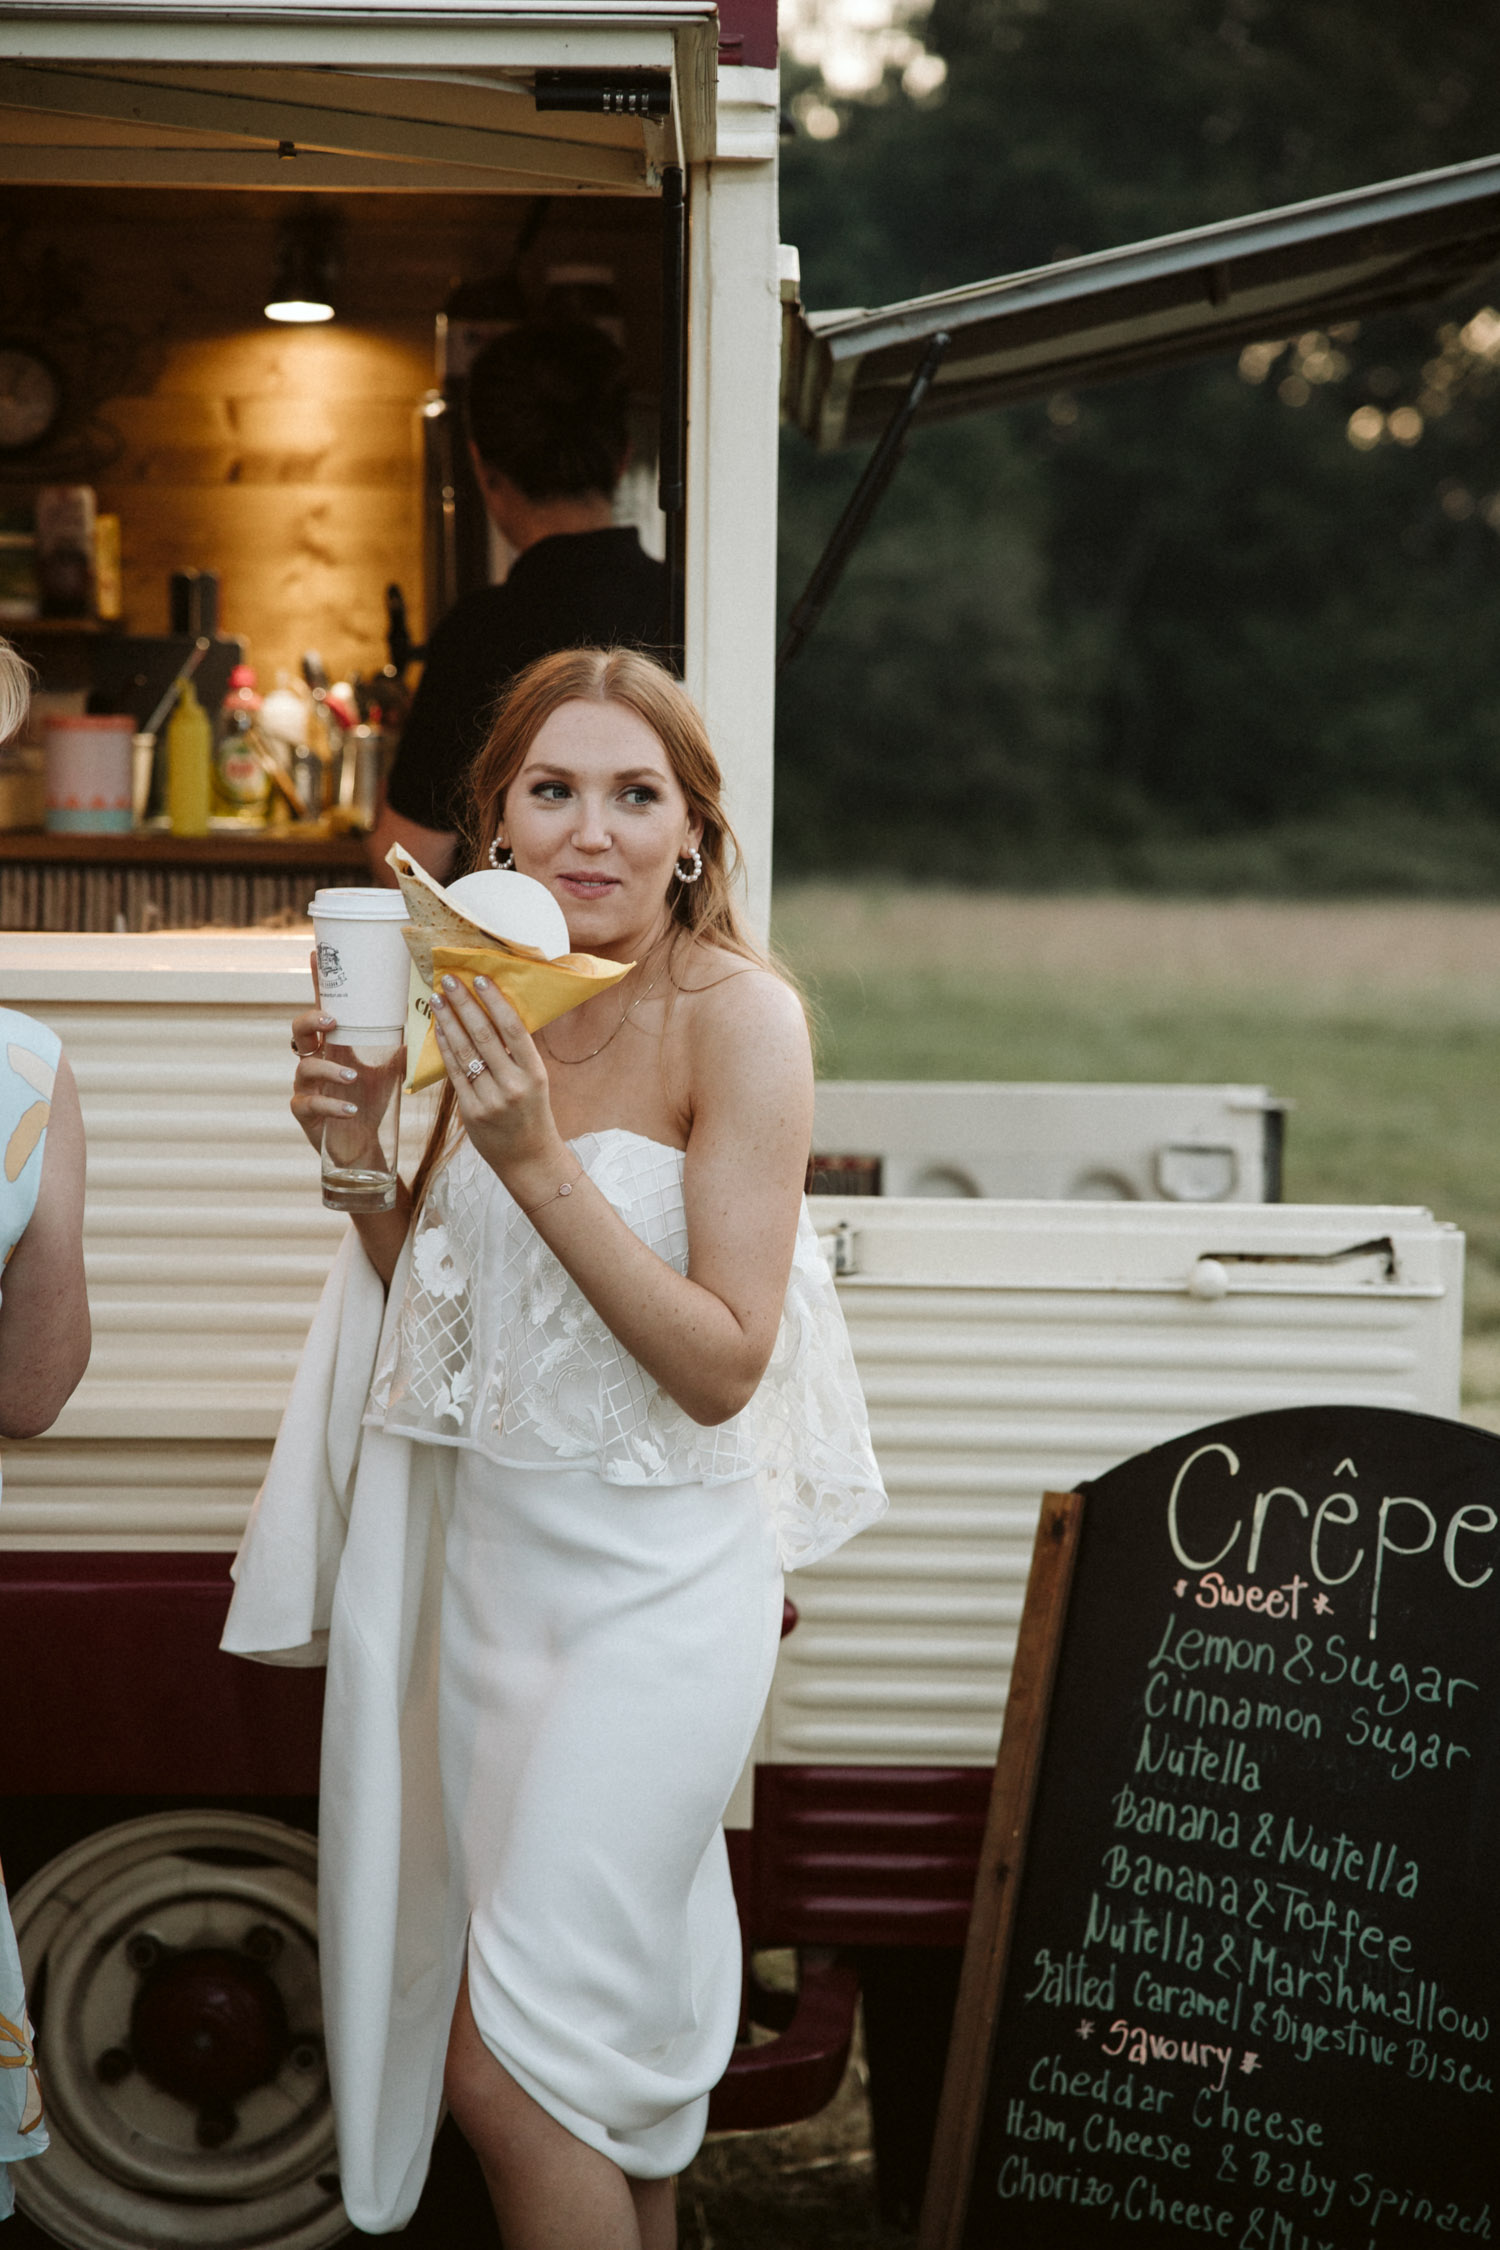 the bride is served a crepe outside the tent